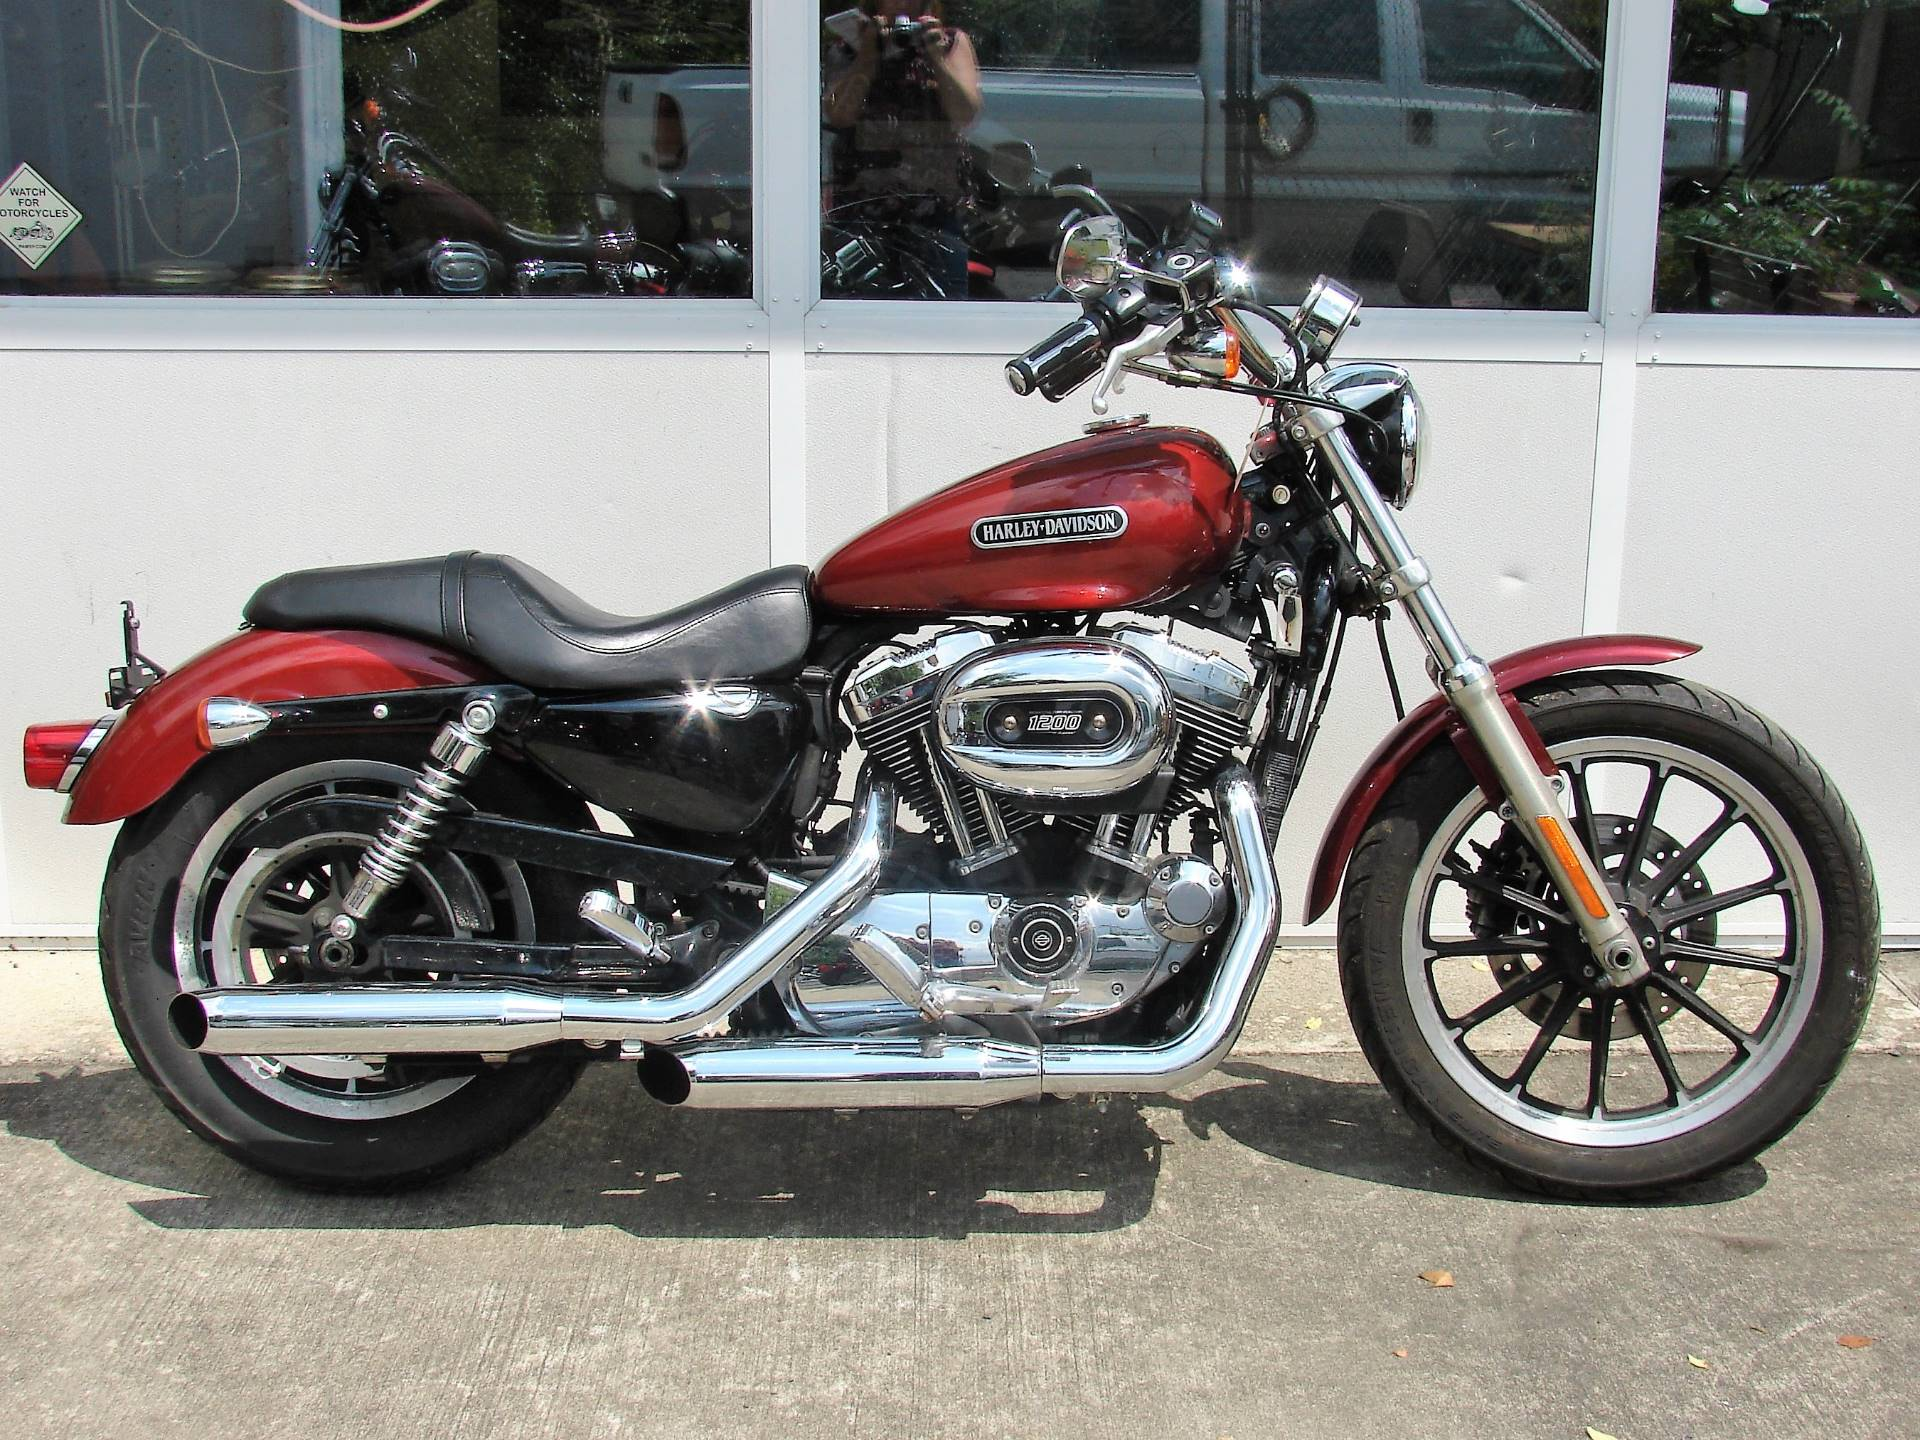 2009 Harley-Davidson XL Sportster 1200cc in Williamstown, New Jersey - Photo 1